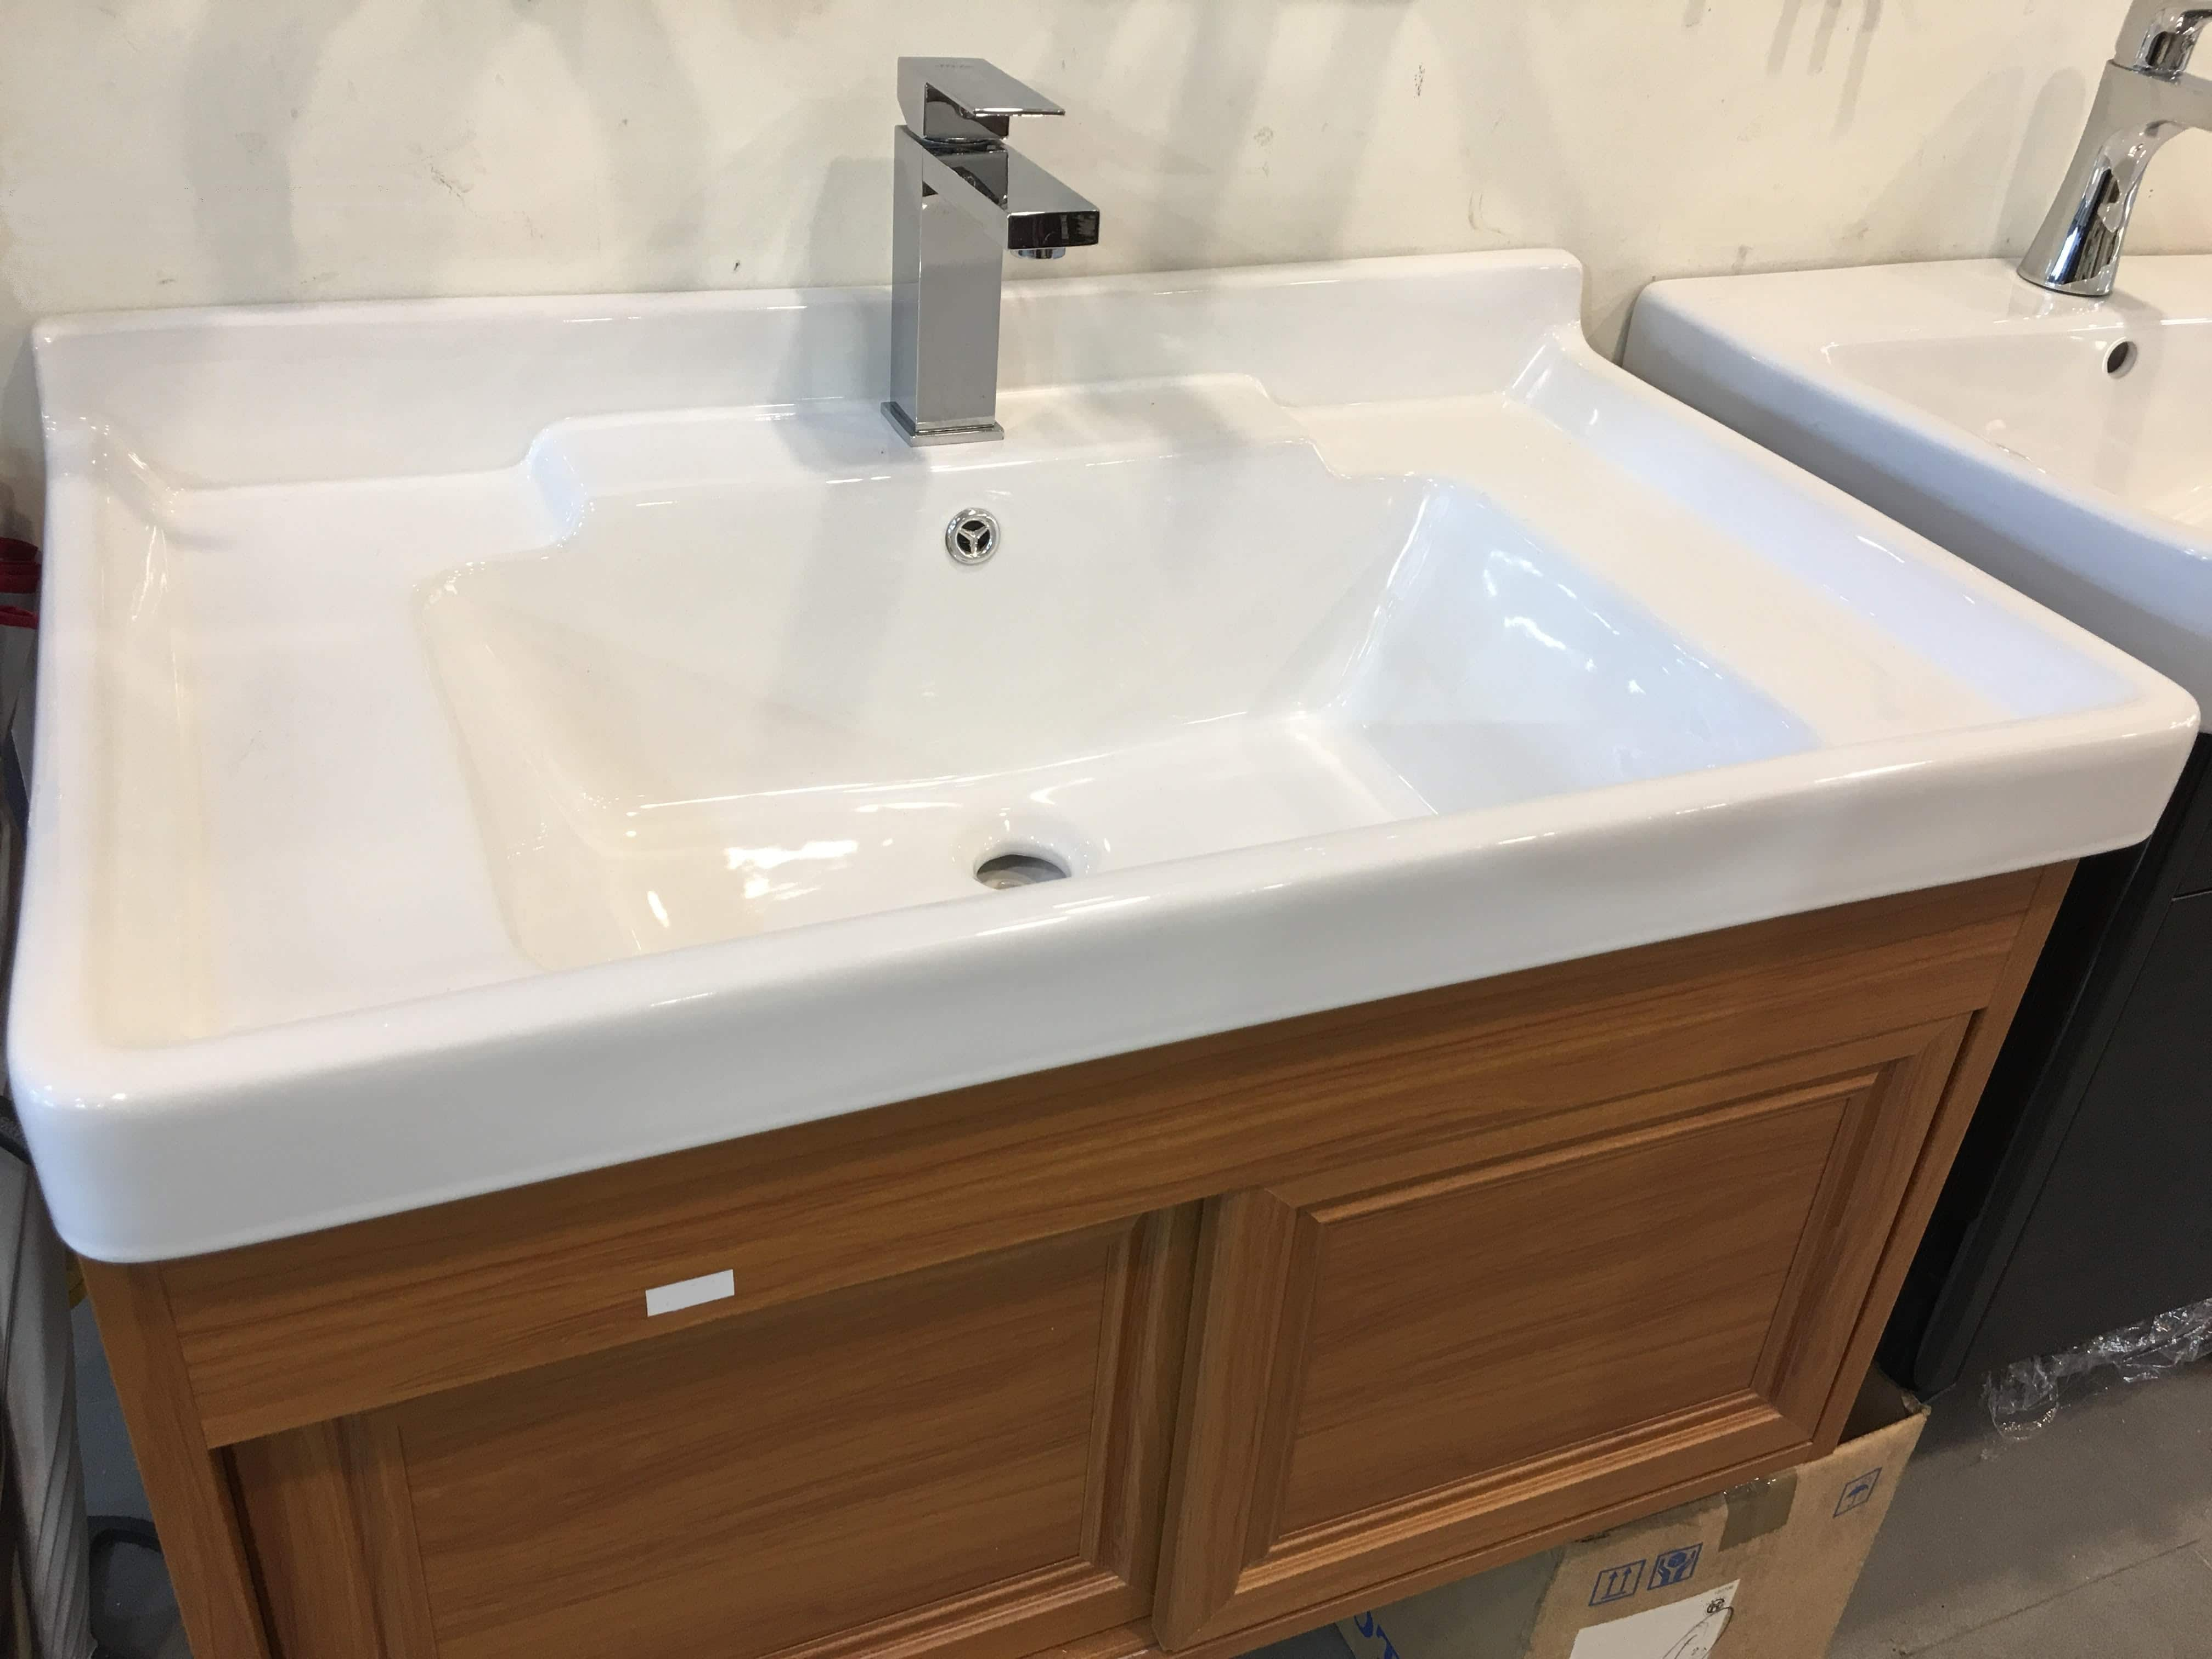 The importance of choosing the right sink 2 home for Bathroom sink singapore